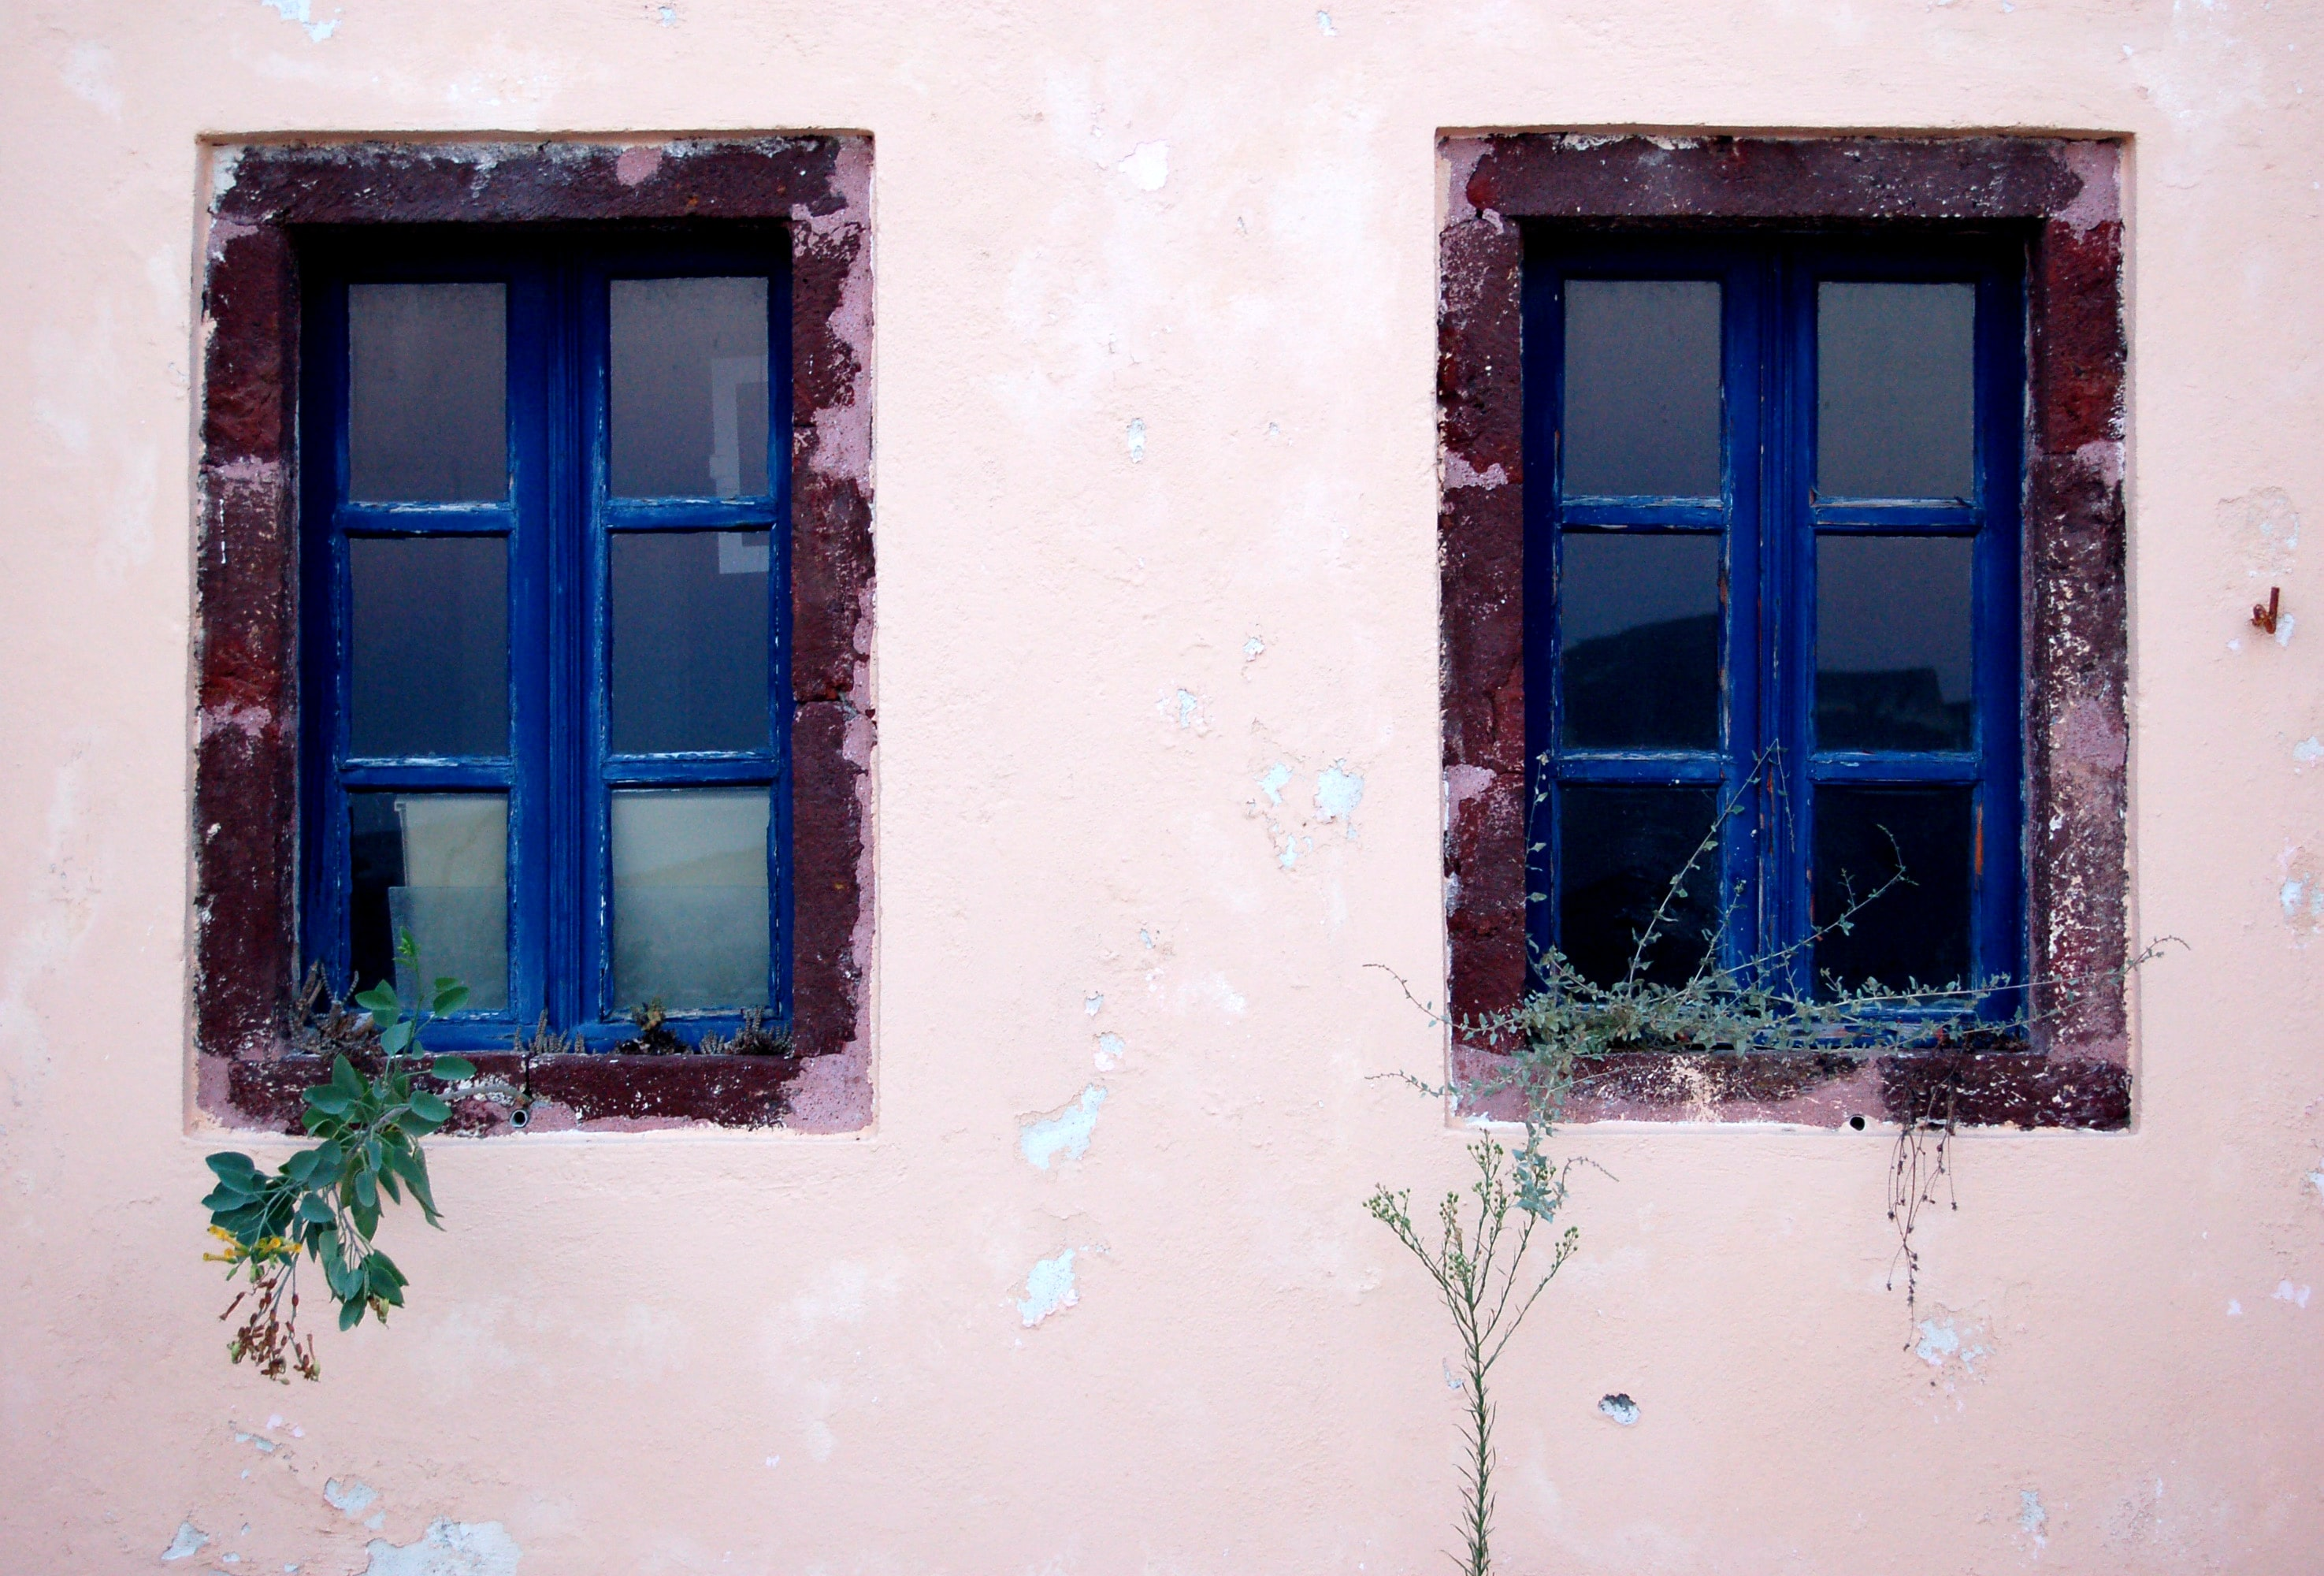 front view of blue windows